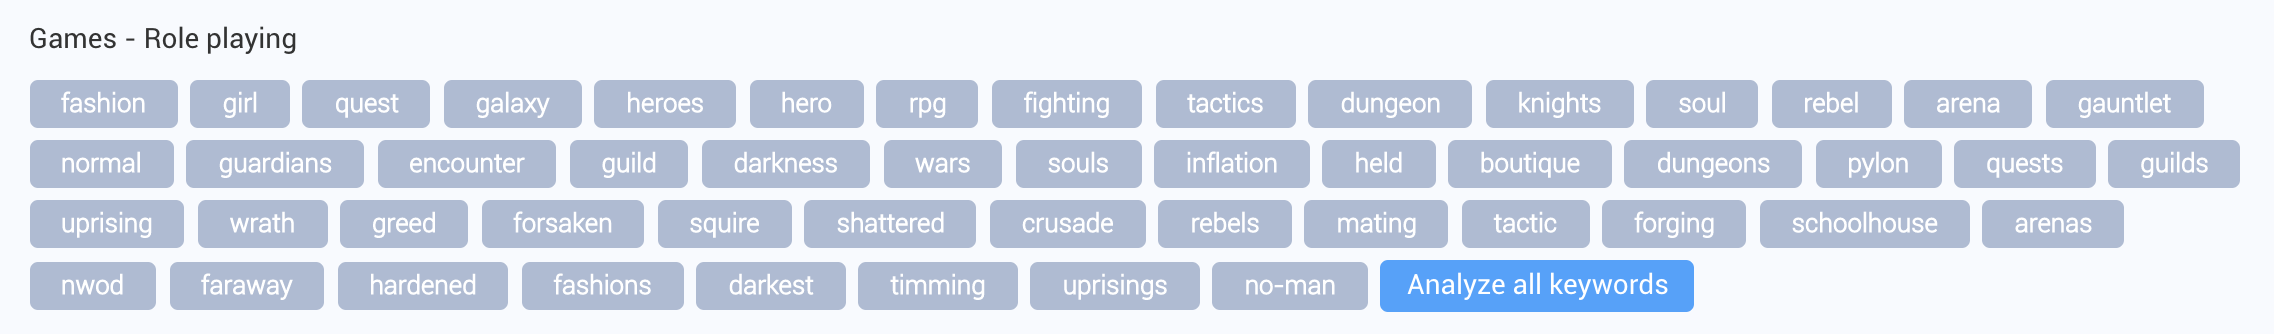 Top category keywords for the Games - Role Playing category (Google Play US)